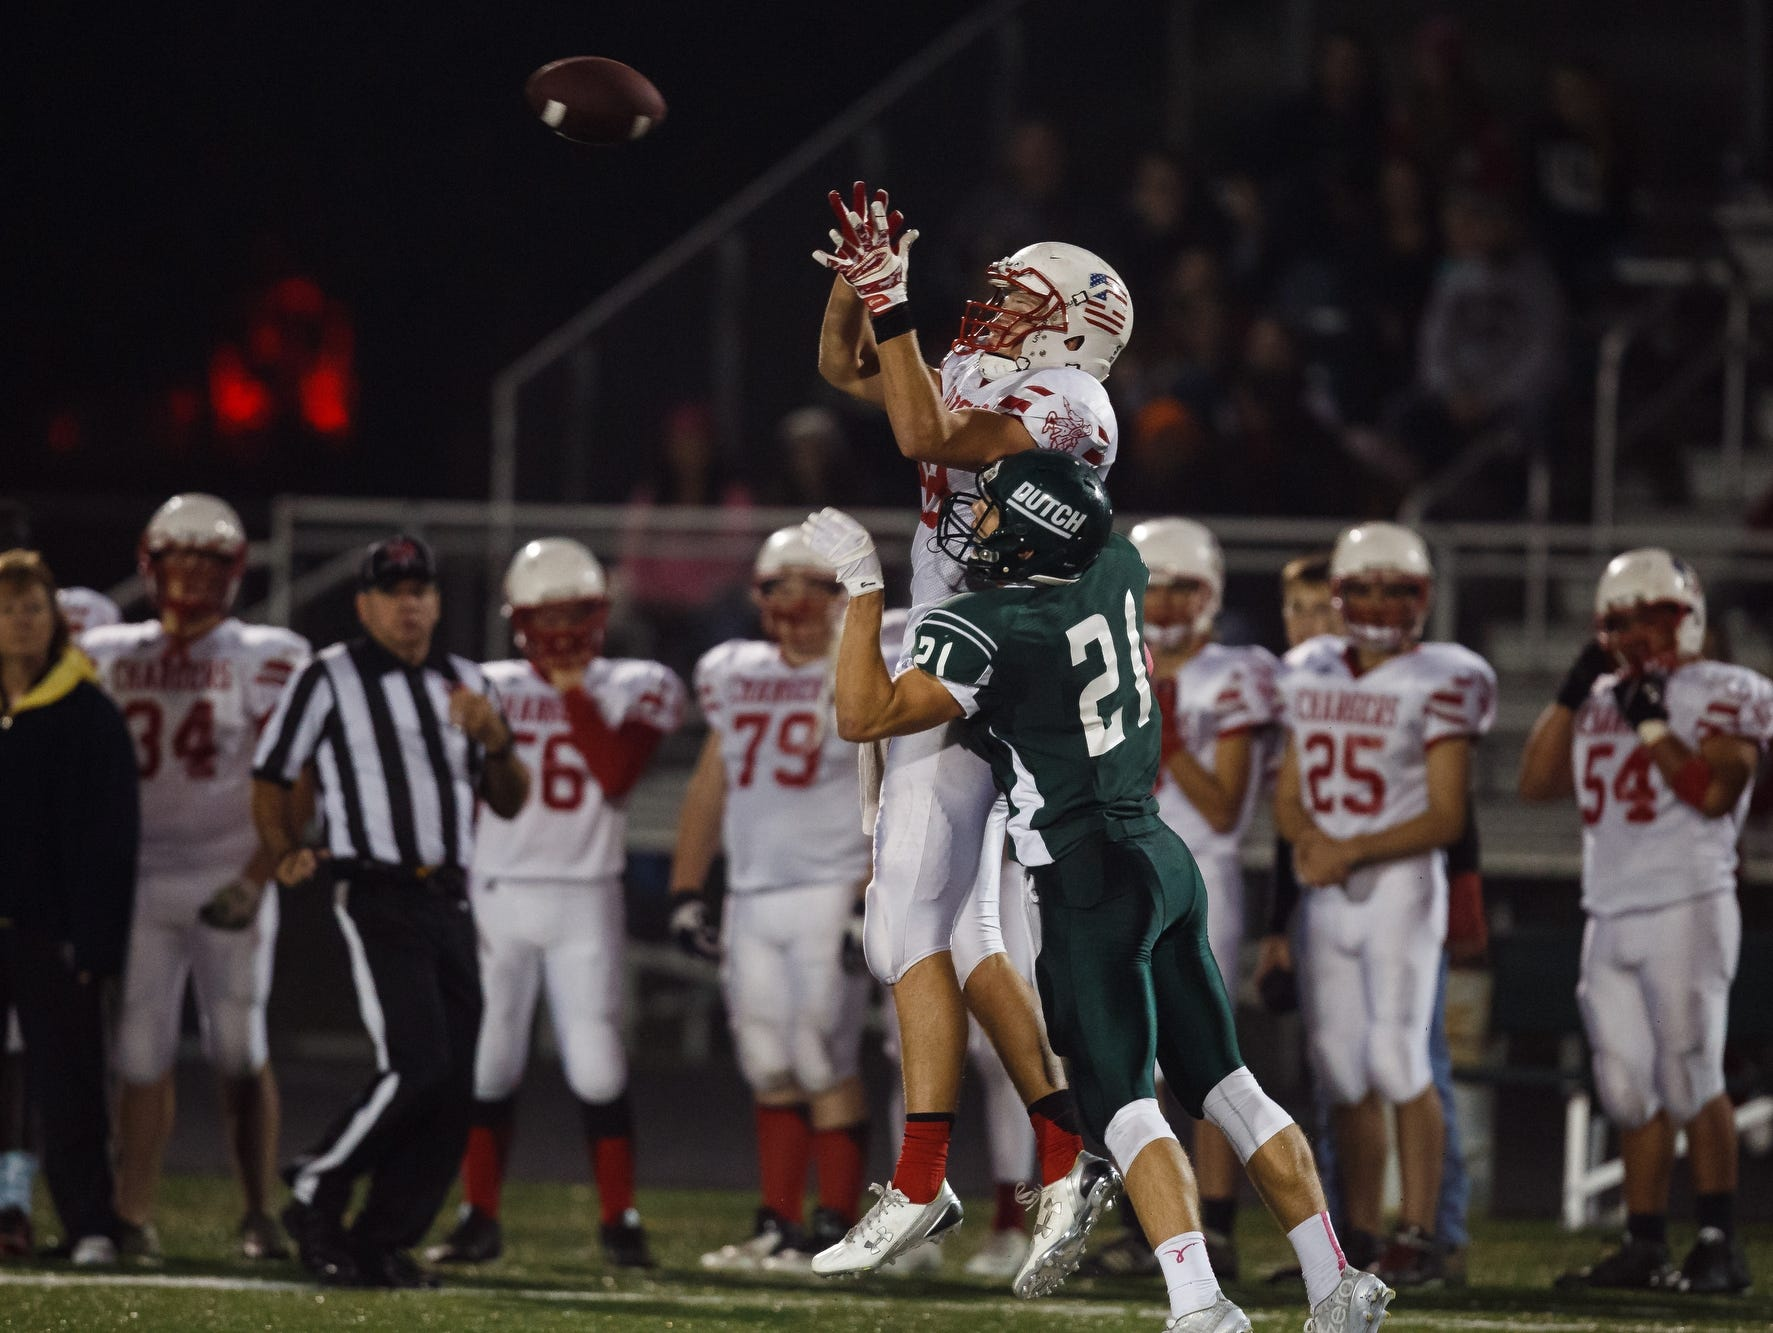 Chariton's T.J. Hockenson pulls in a pass over Pella's Will Warner during their game in Pella Friday, October 23, 2015.